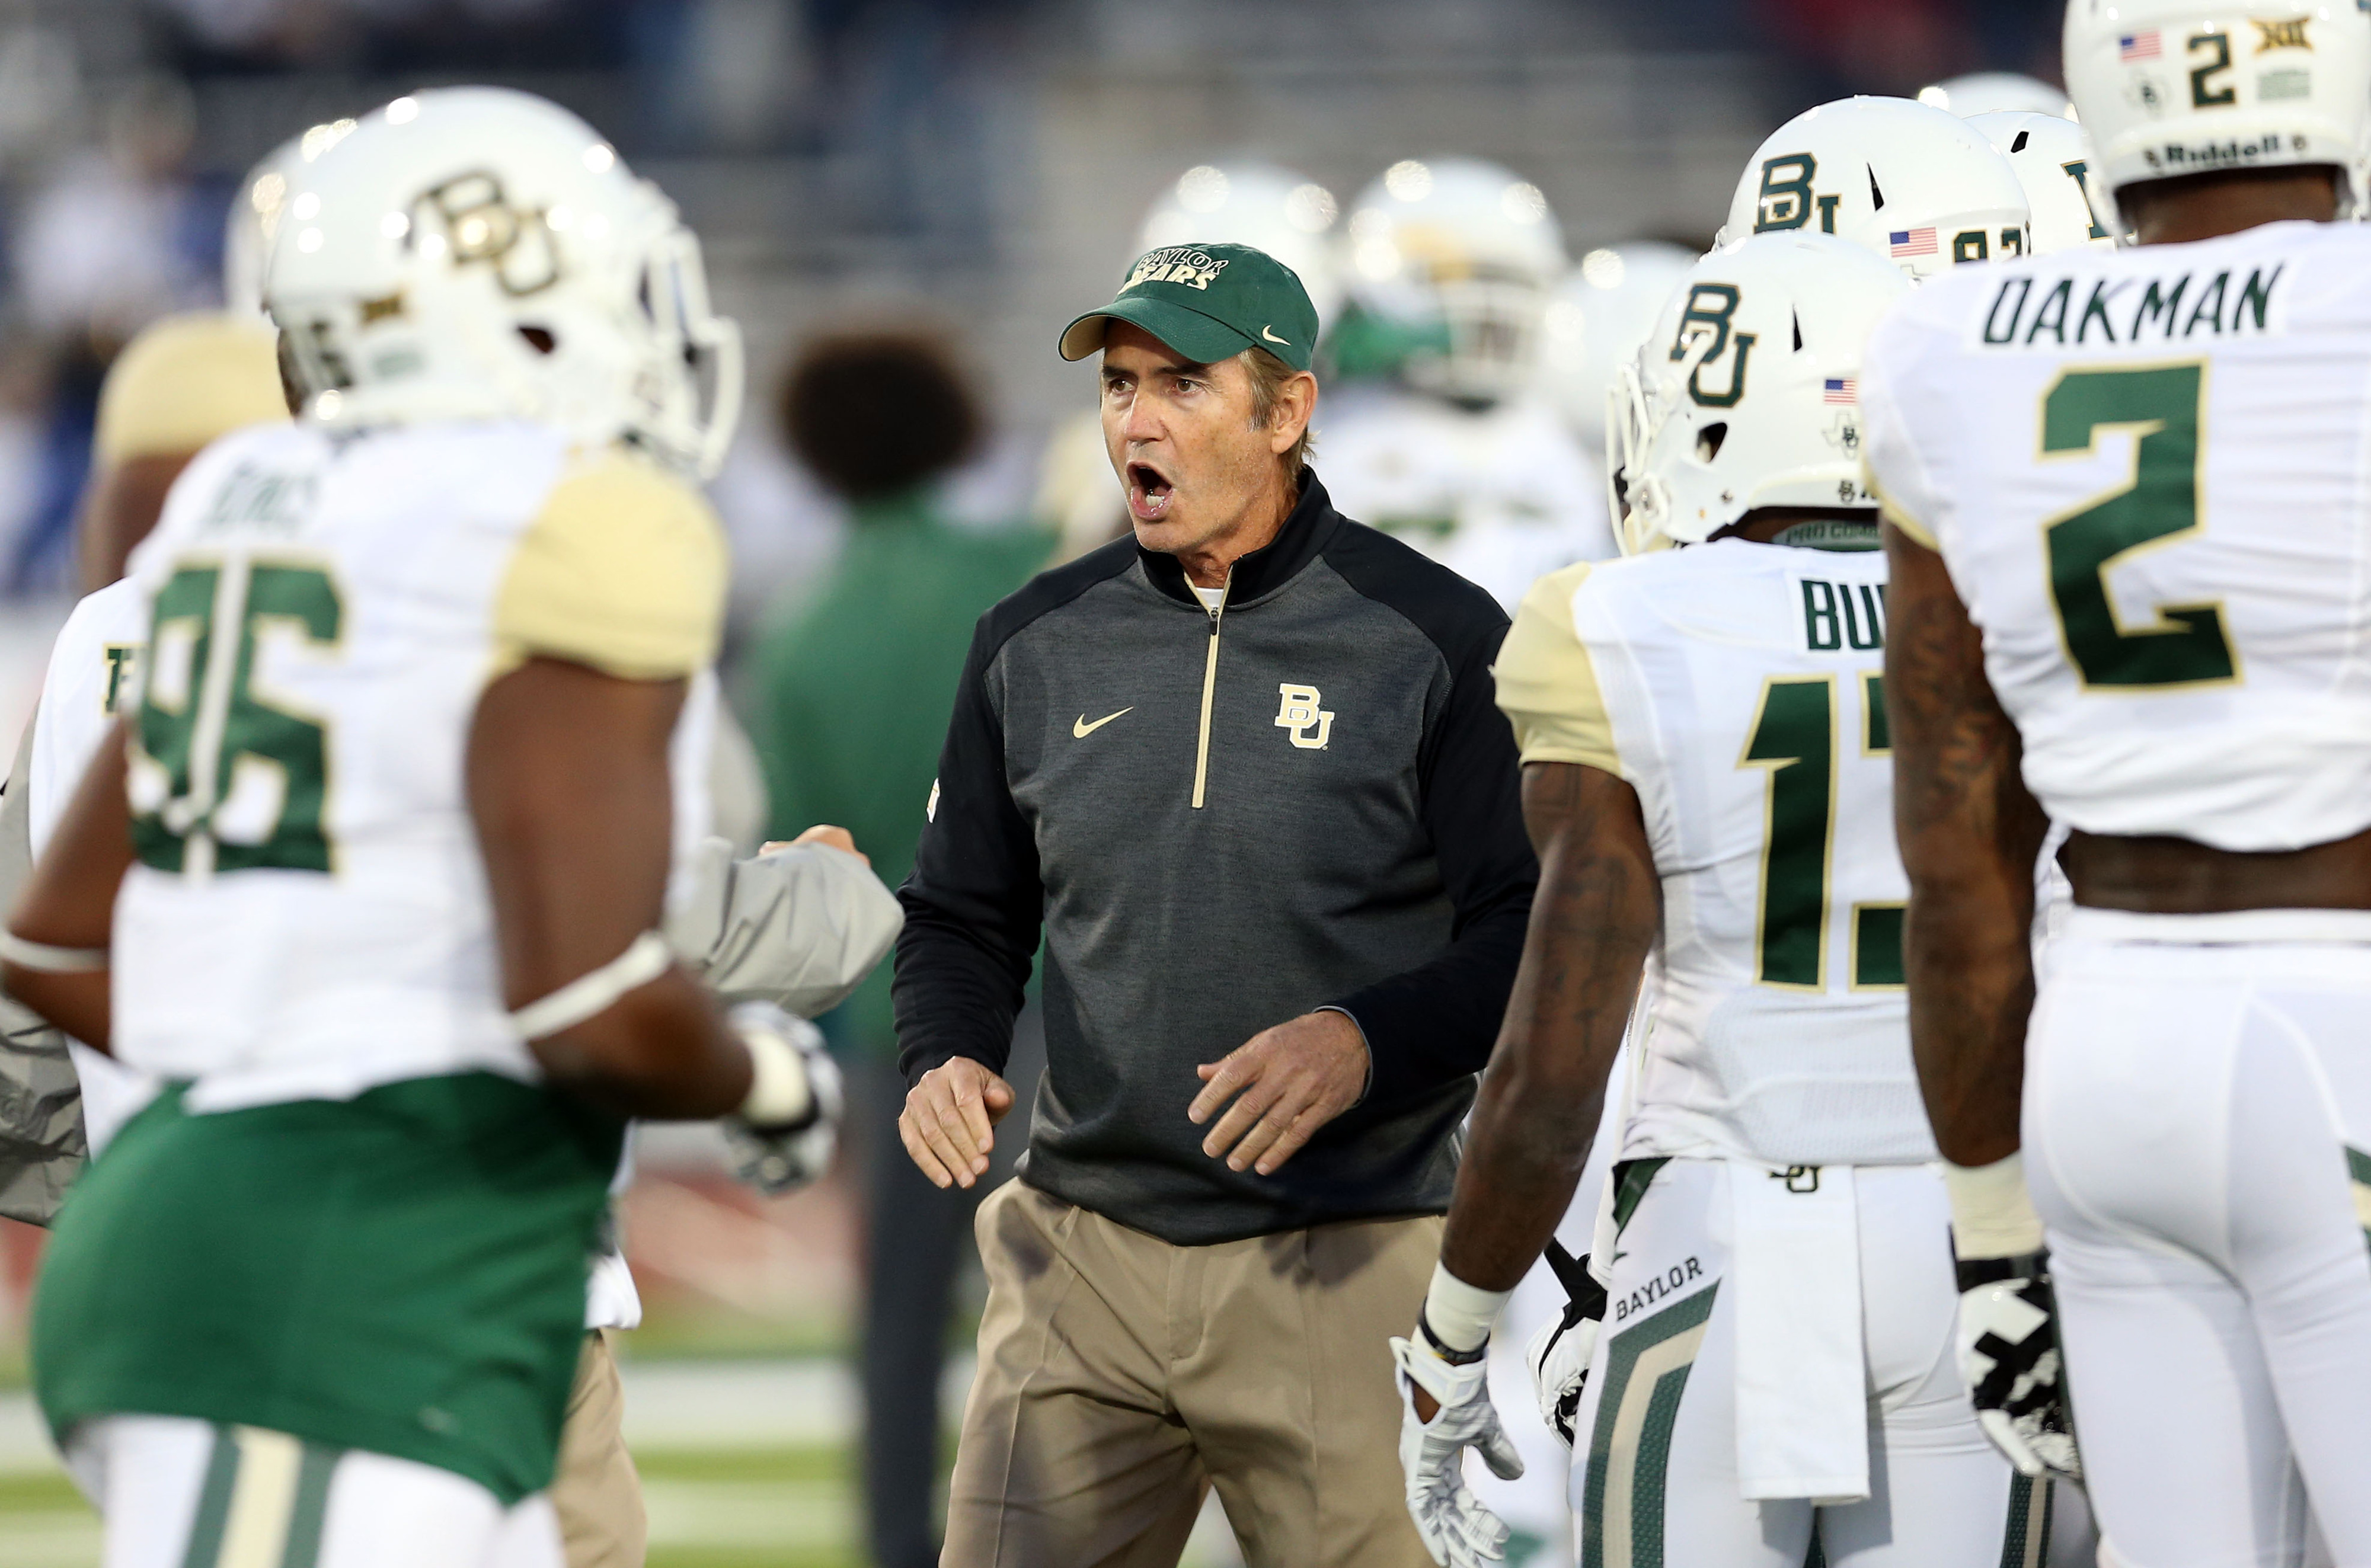 Is it just me, or does Art Briles look like he's doing the Haka here?